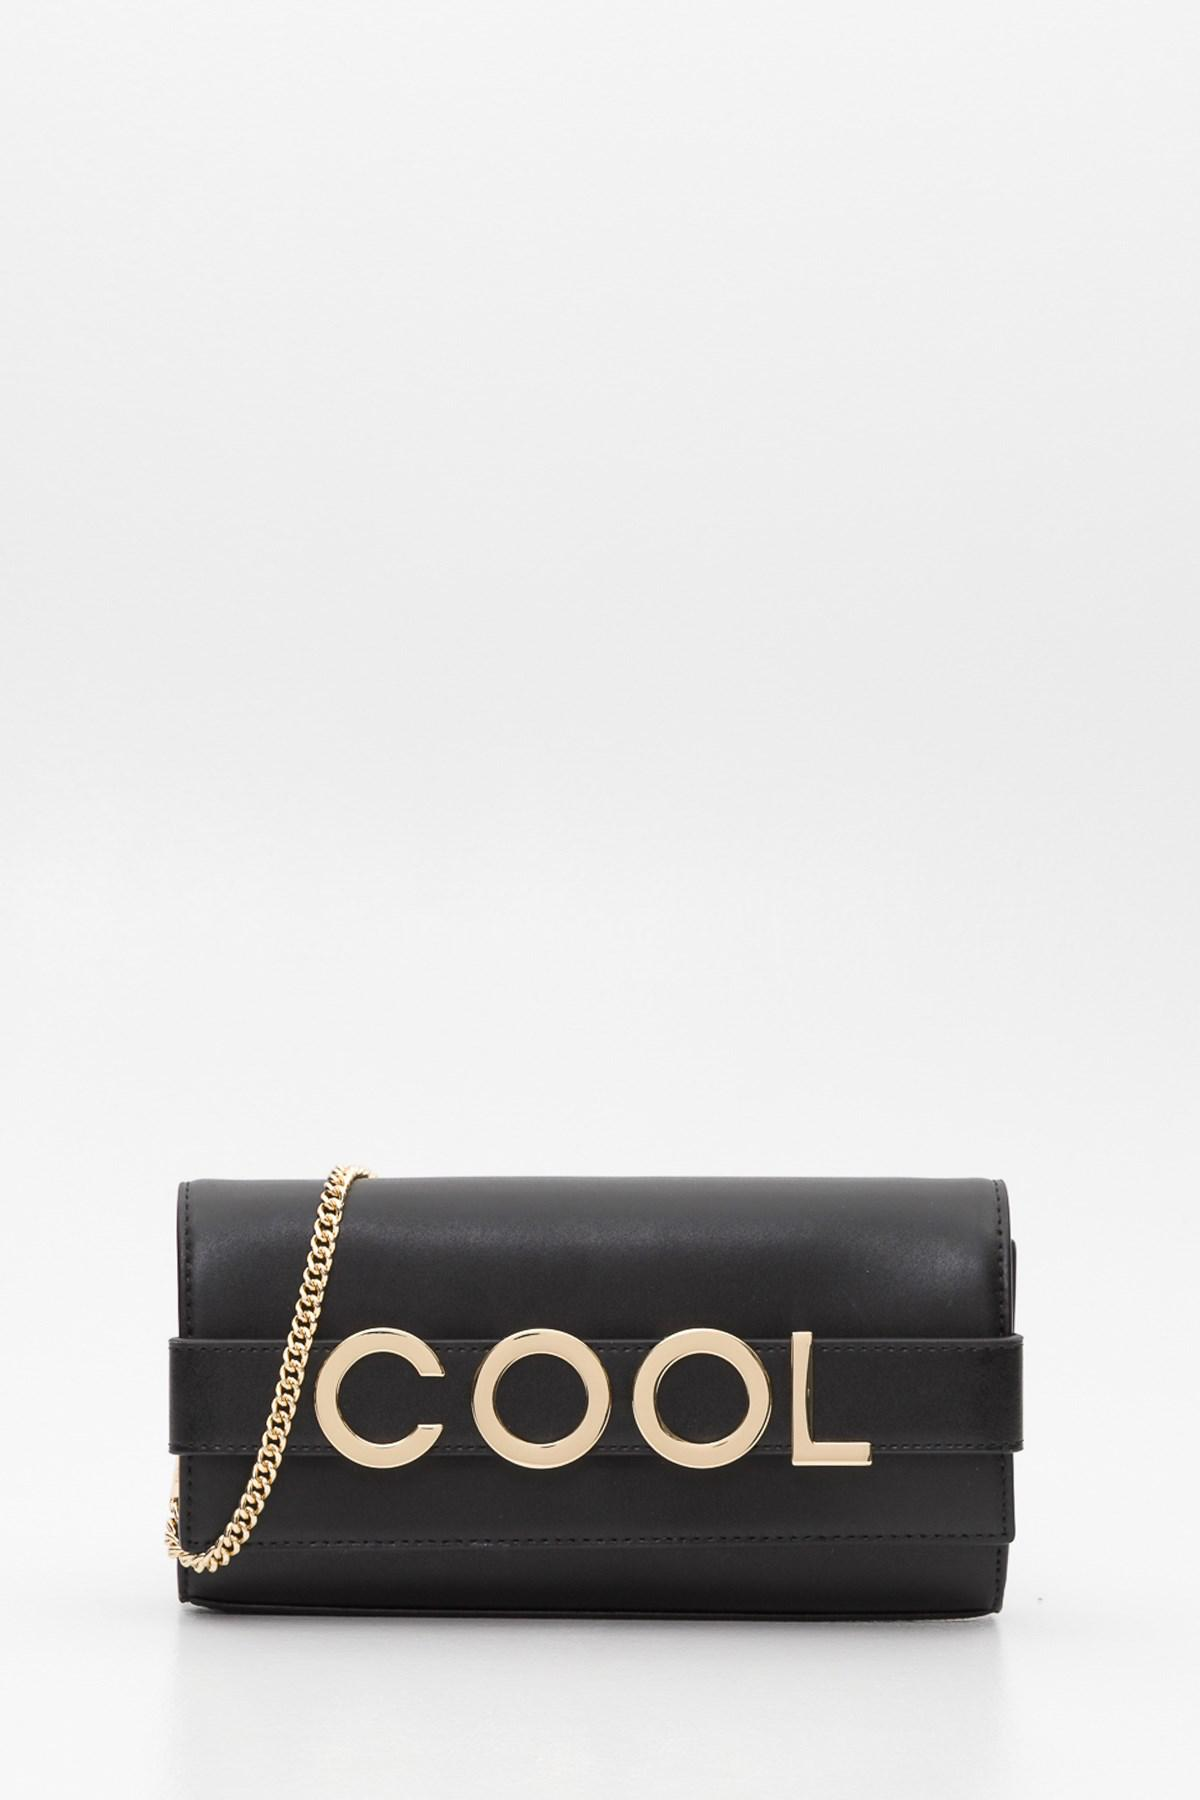 8bfd380a11 MICHAEL Michael Kors - Black Bellamie Embellished Leather Clutch - Lyst.  View fullscreen